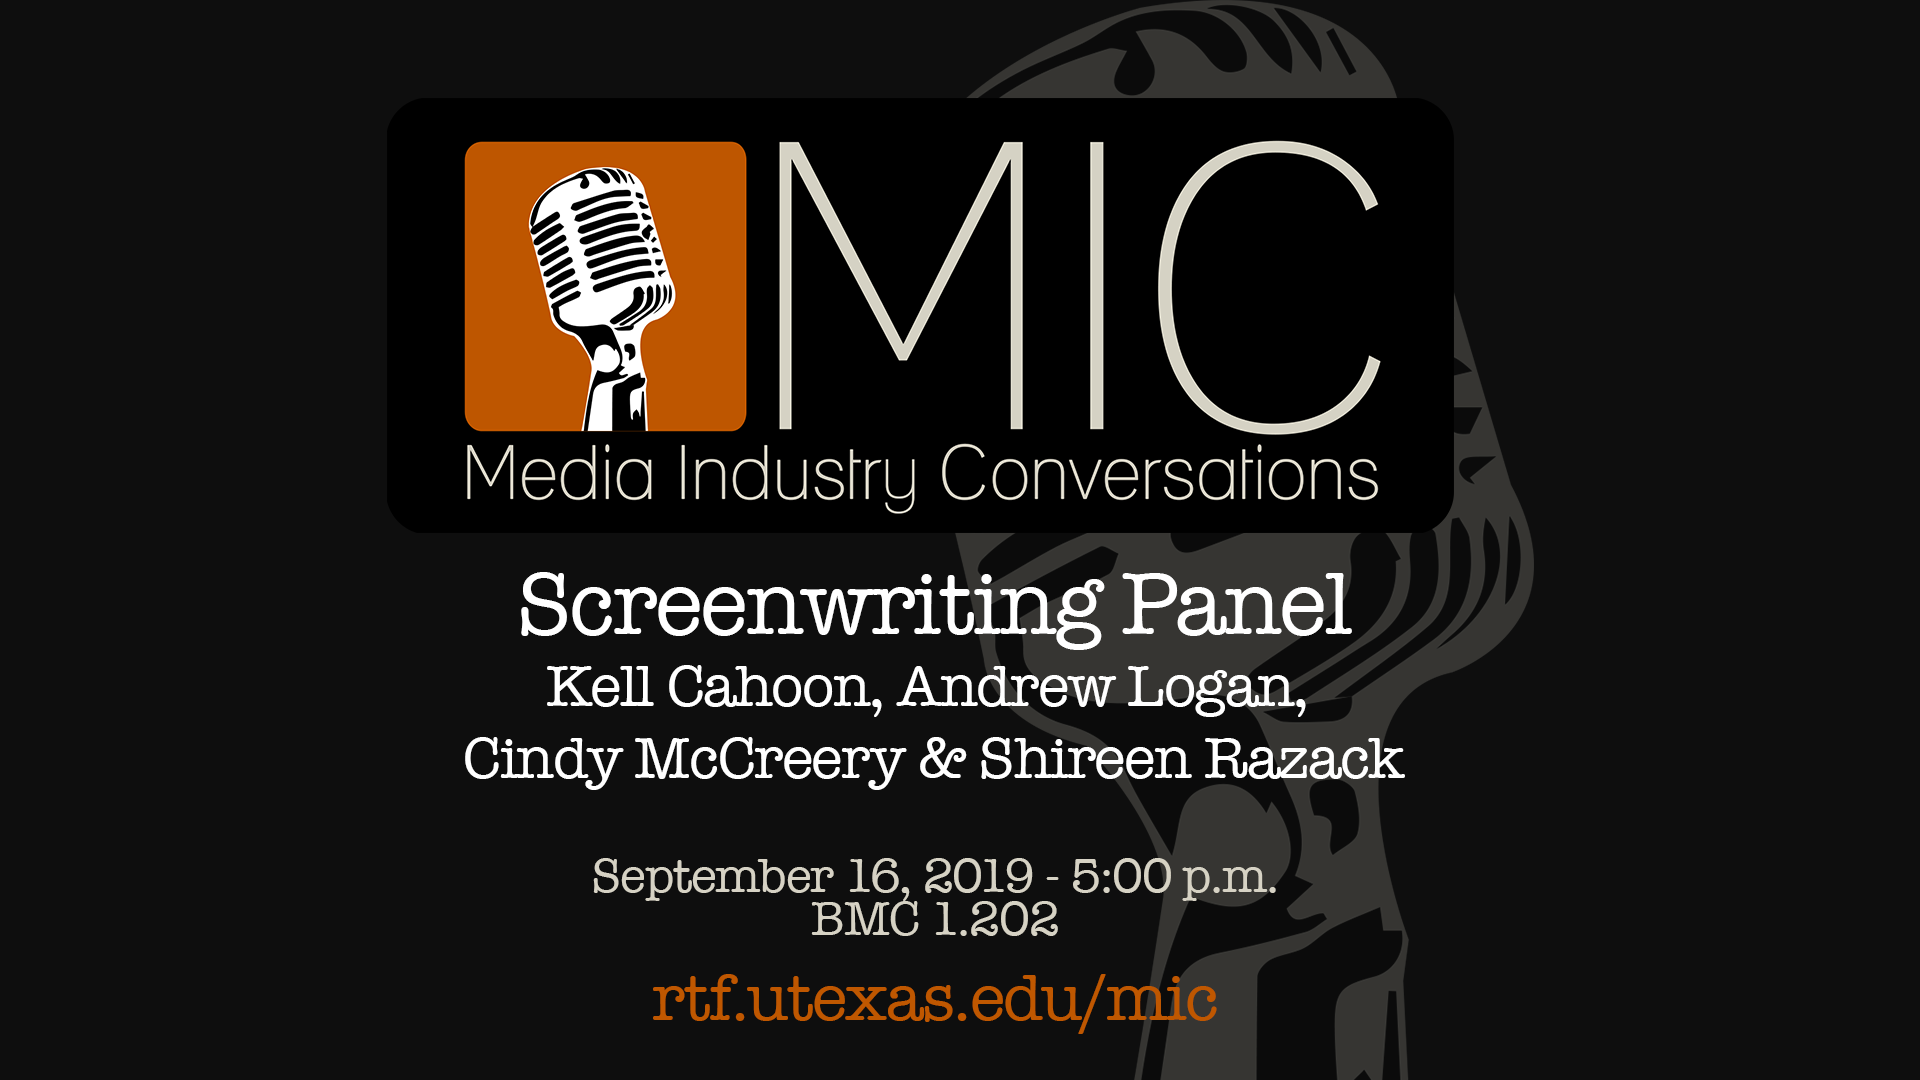 screenwriting_panel_MIC_september_16_2019_kell_cahoon_cindy_mccreery_andrew_logan_shirren_razack_5pm_BMC_1.202